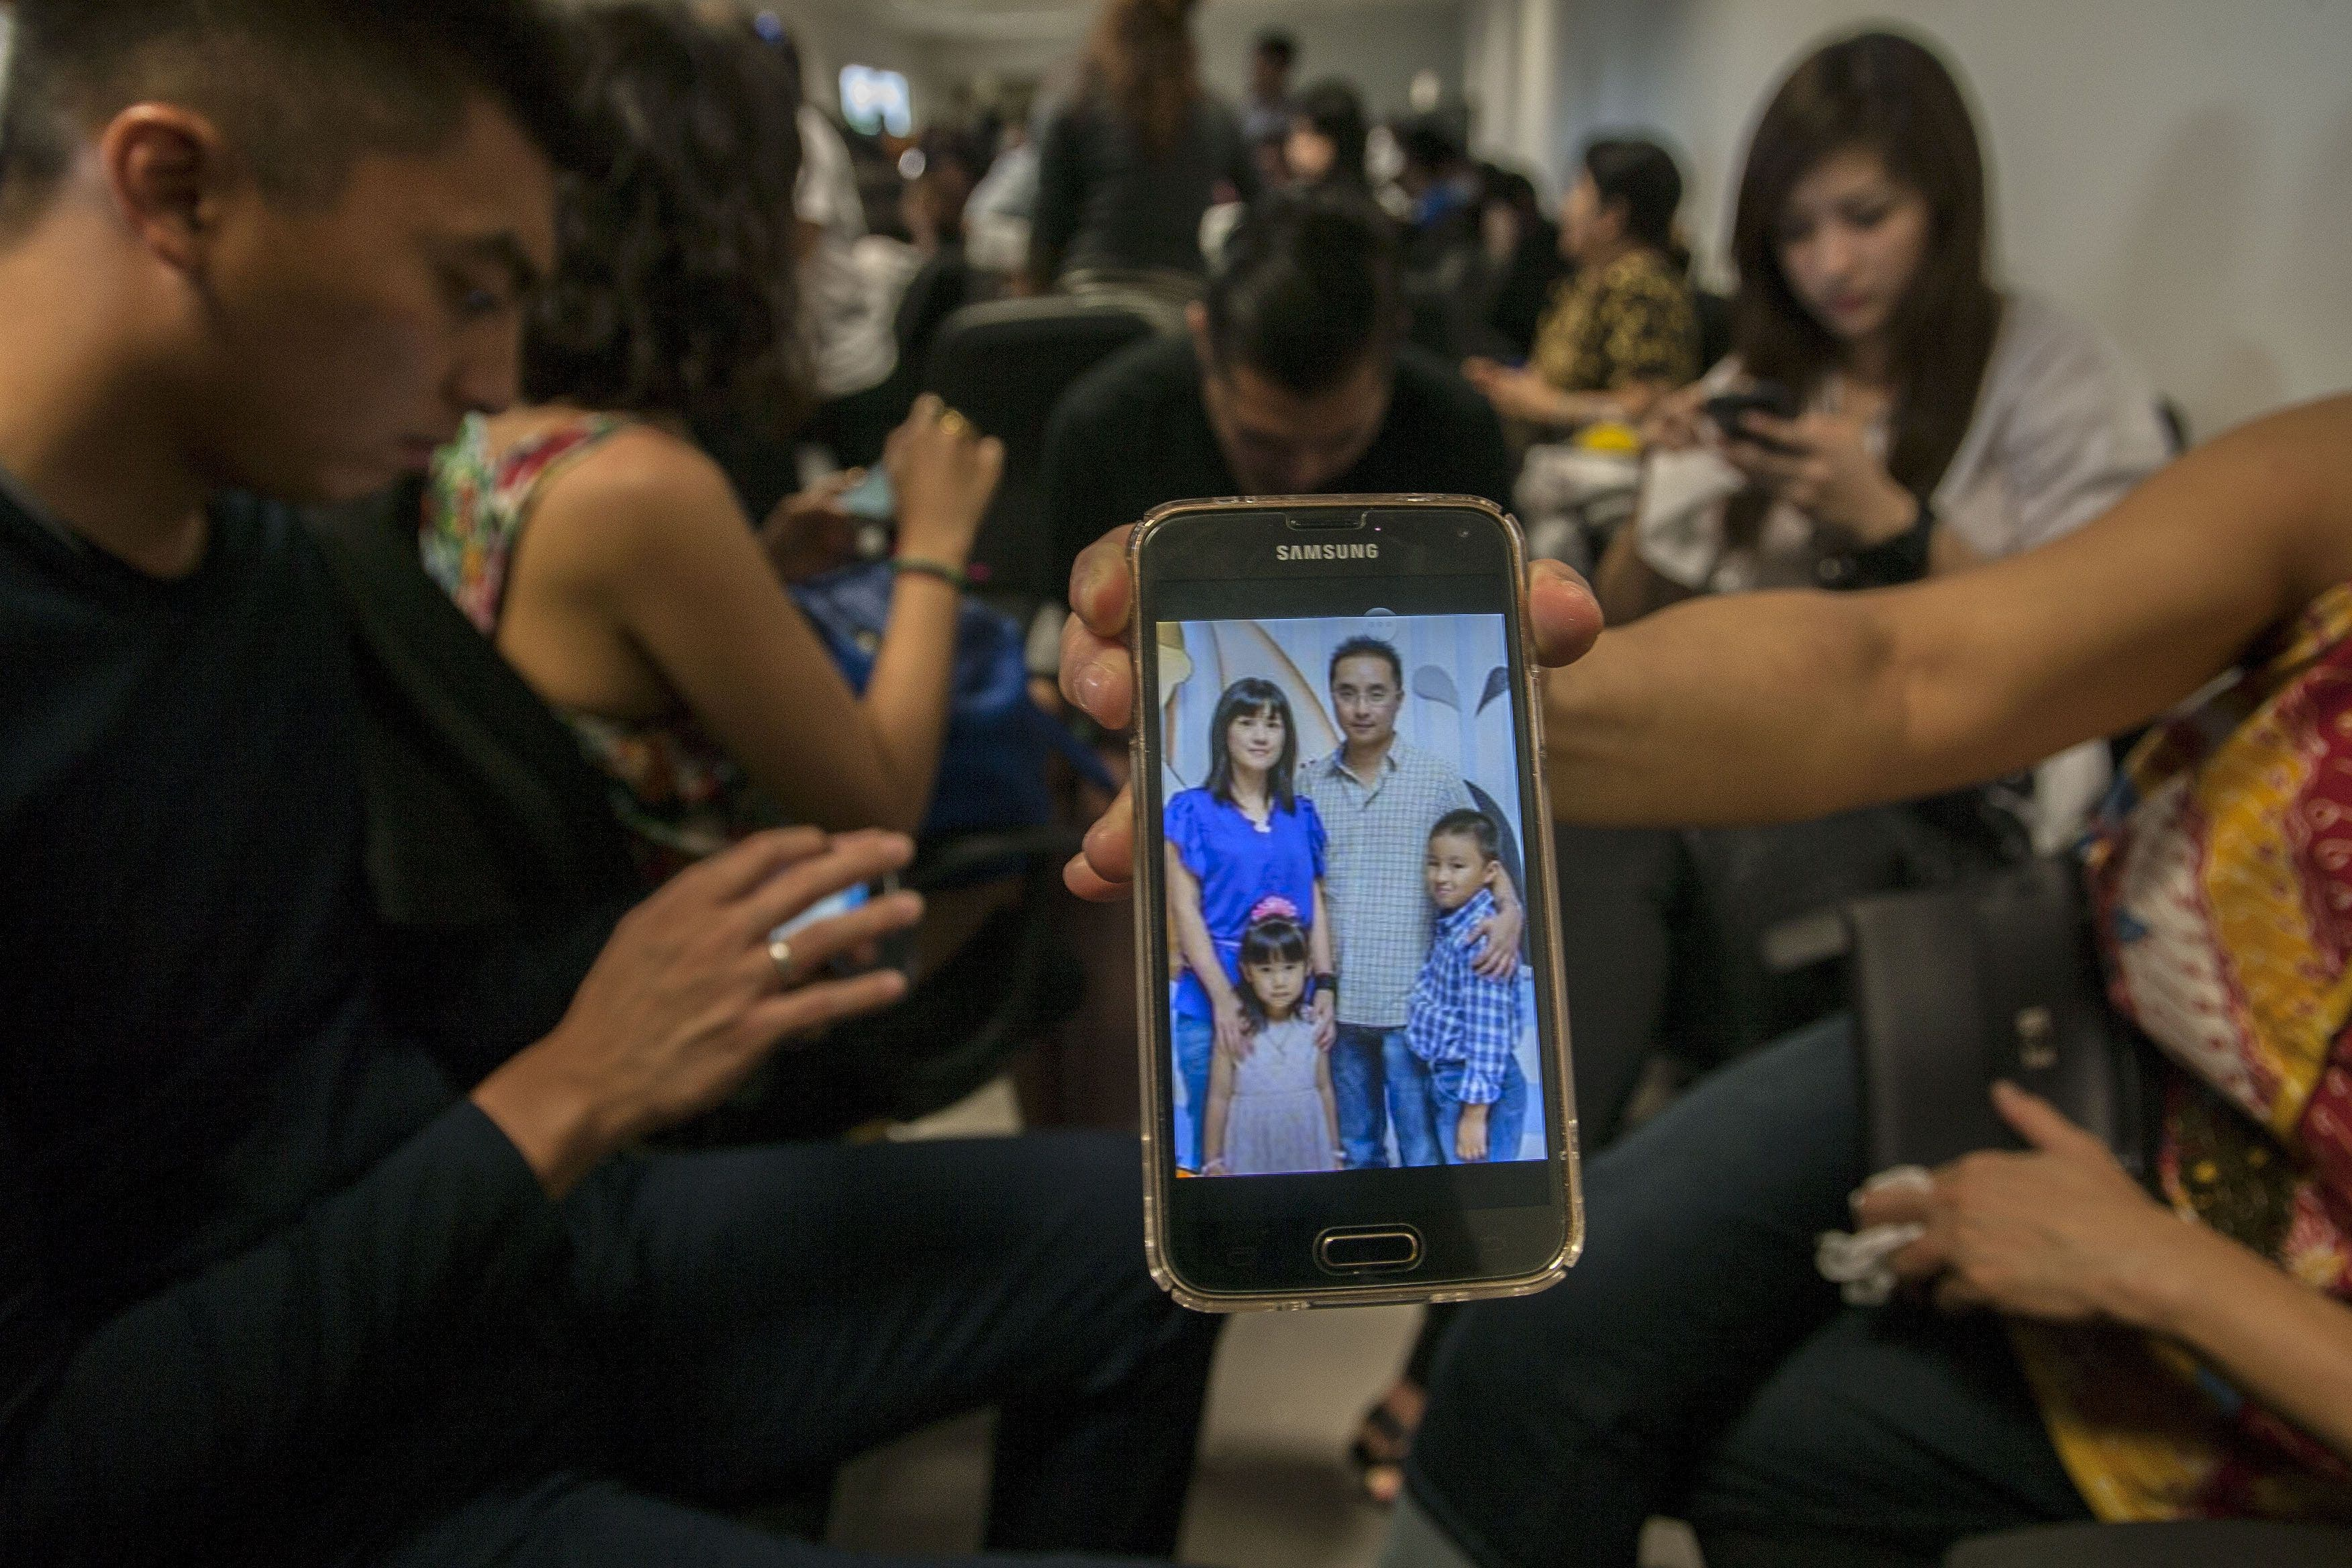 A relative shows a picture of alleged passengers who were travelling on missing Malaysian air carrier AirAsia flight QZ8501. (AFP)